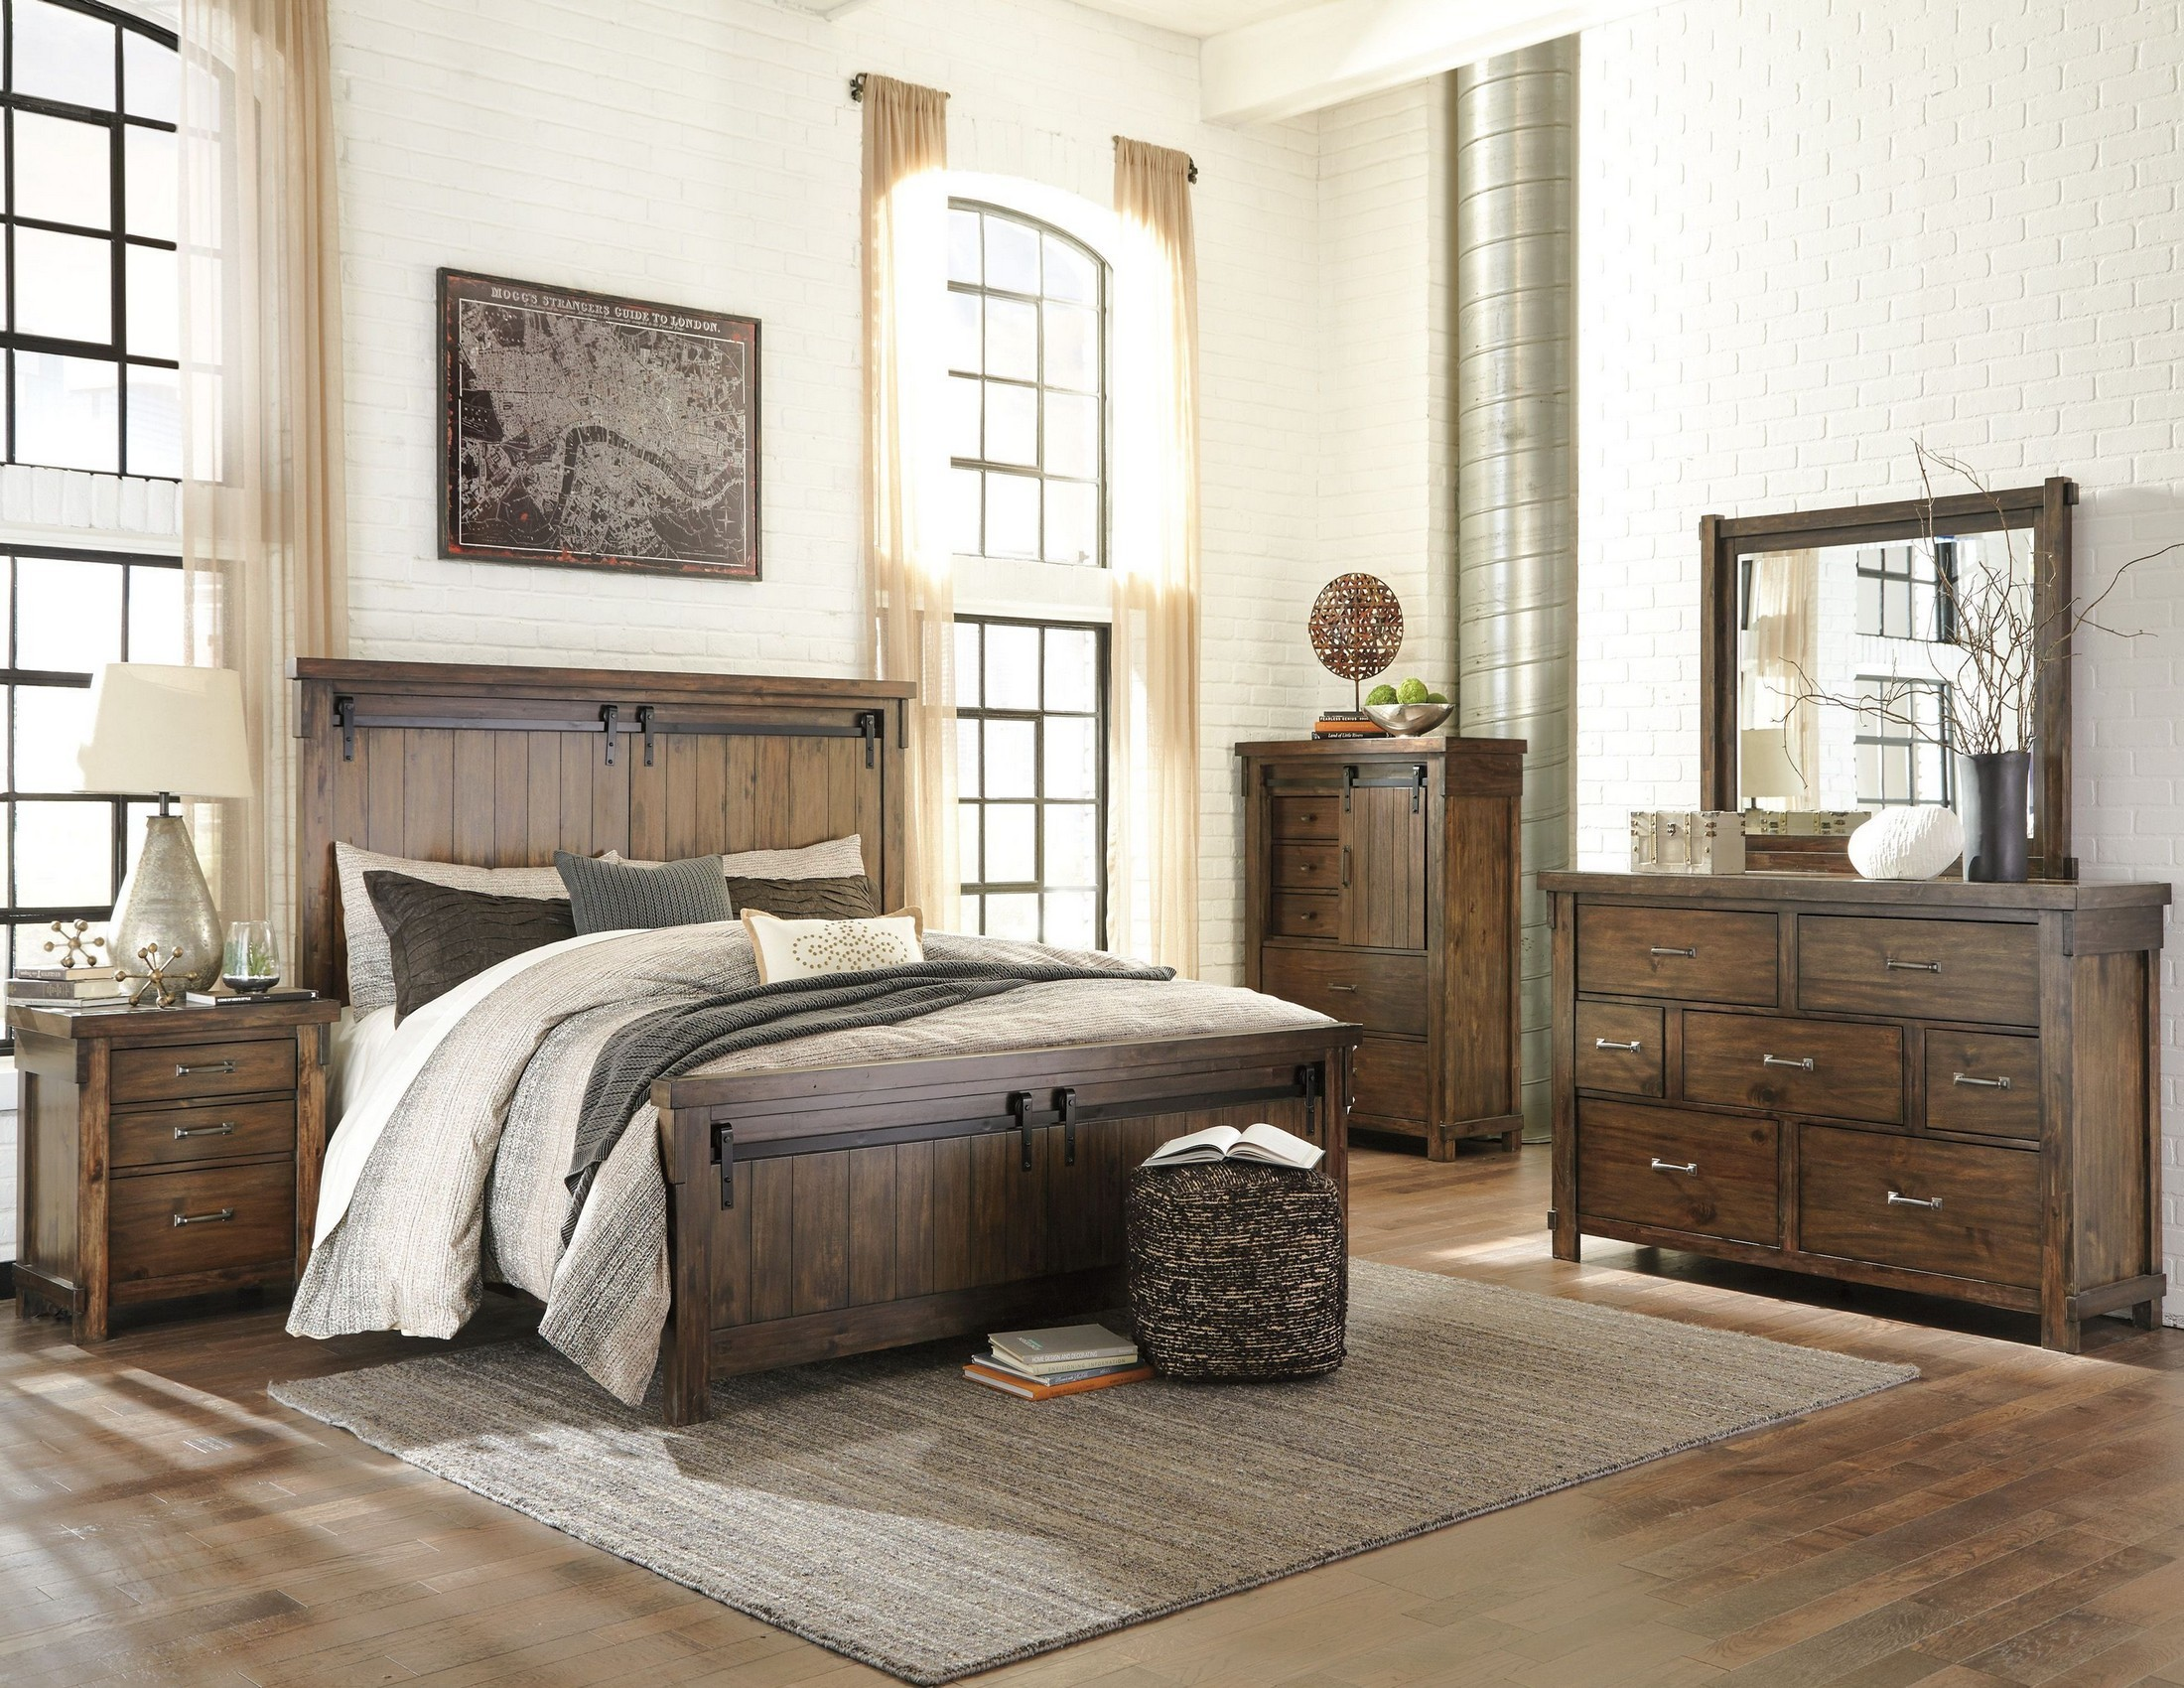 Lakeleigh Brown Panel Bedroom Set From Ashley